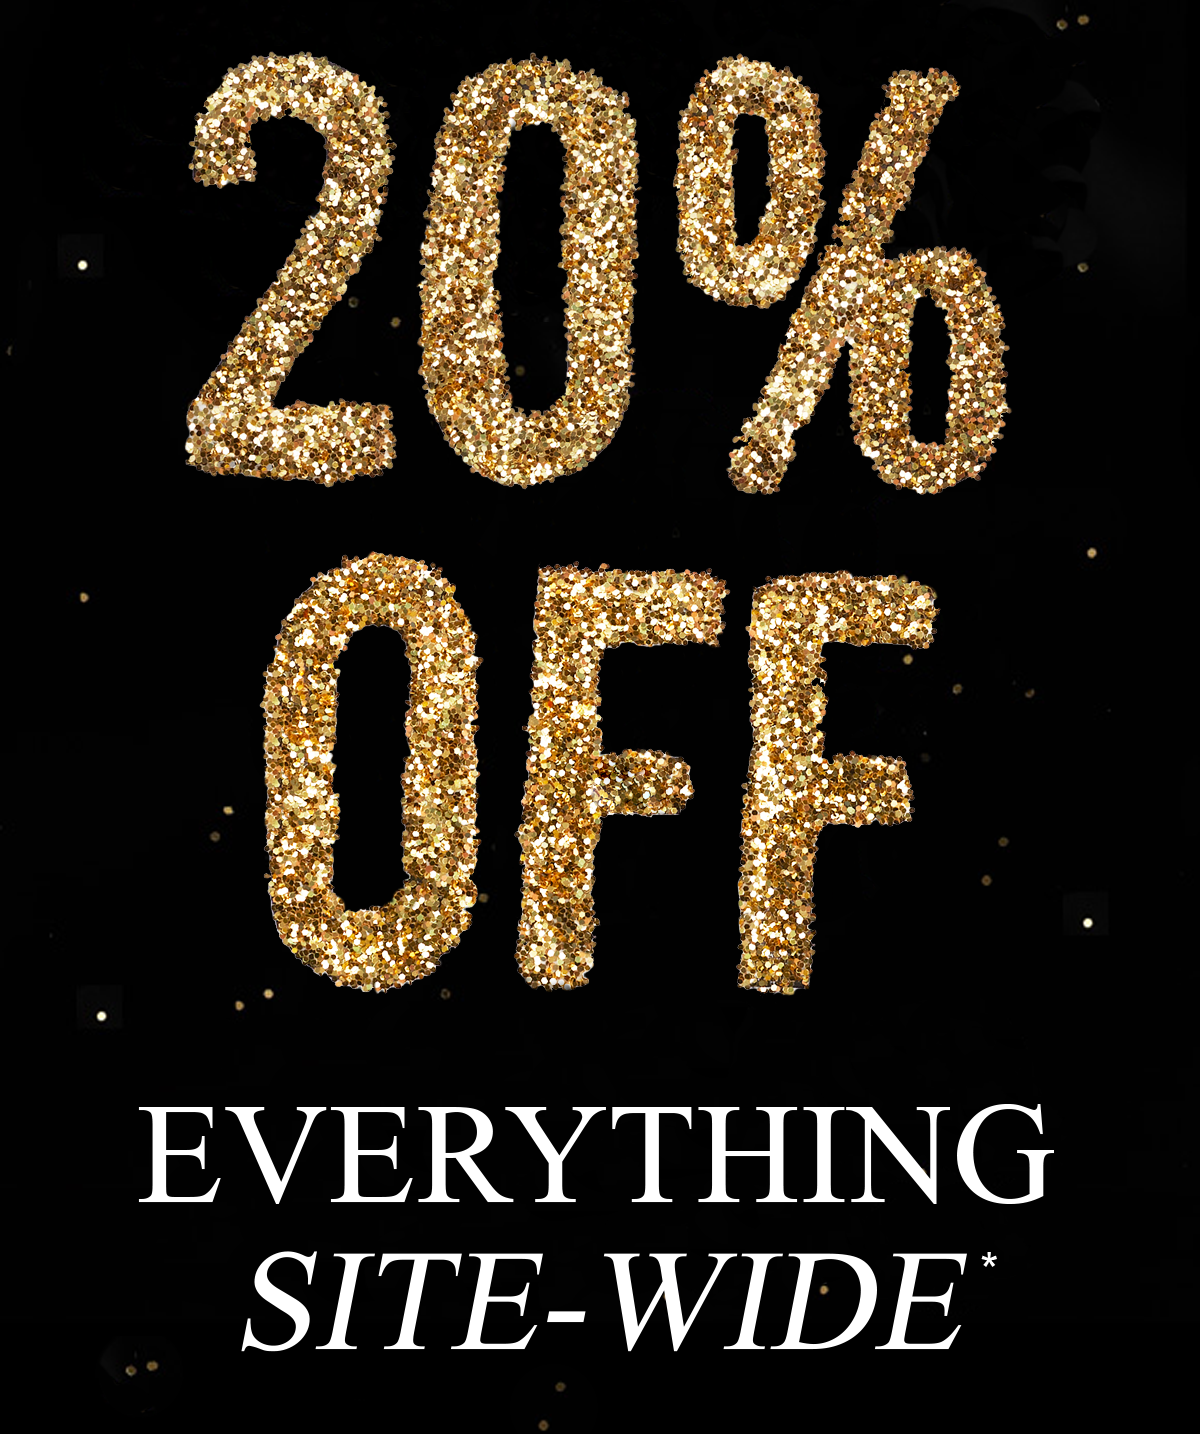 20% OFF EVERYTHING SITE-WIDE*